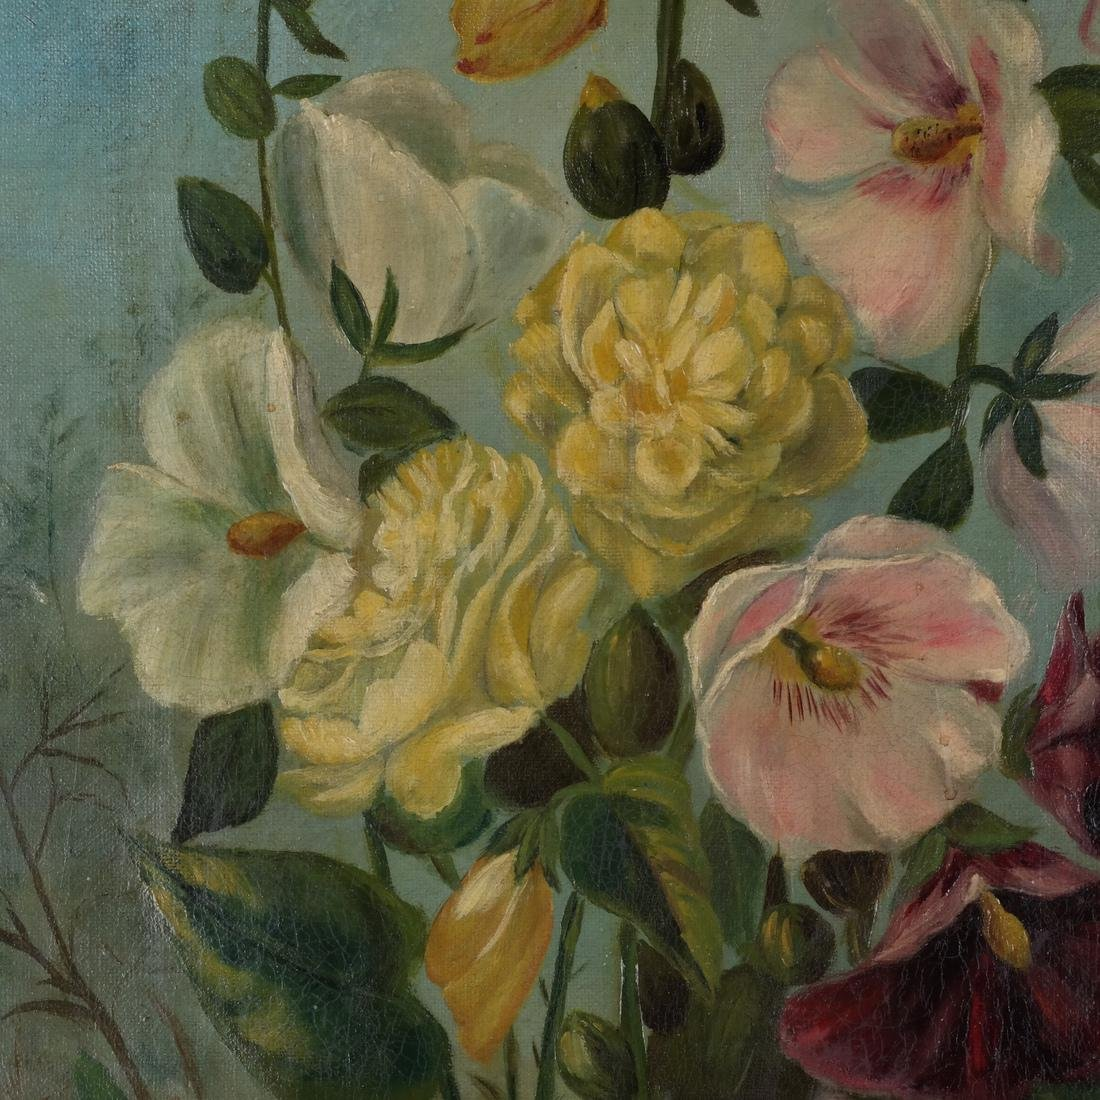 Pair of Floral Still Lifes, Oils on Canvas - 3